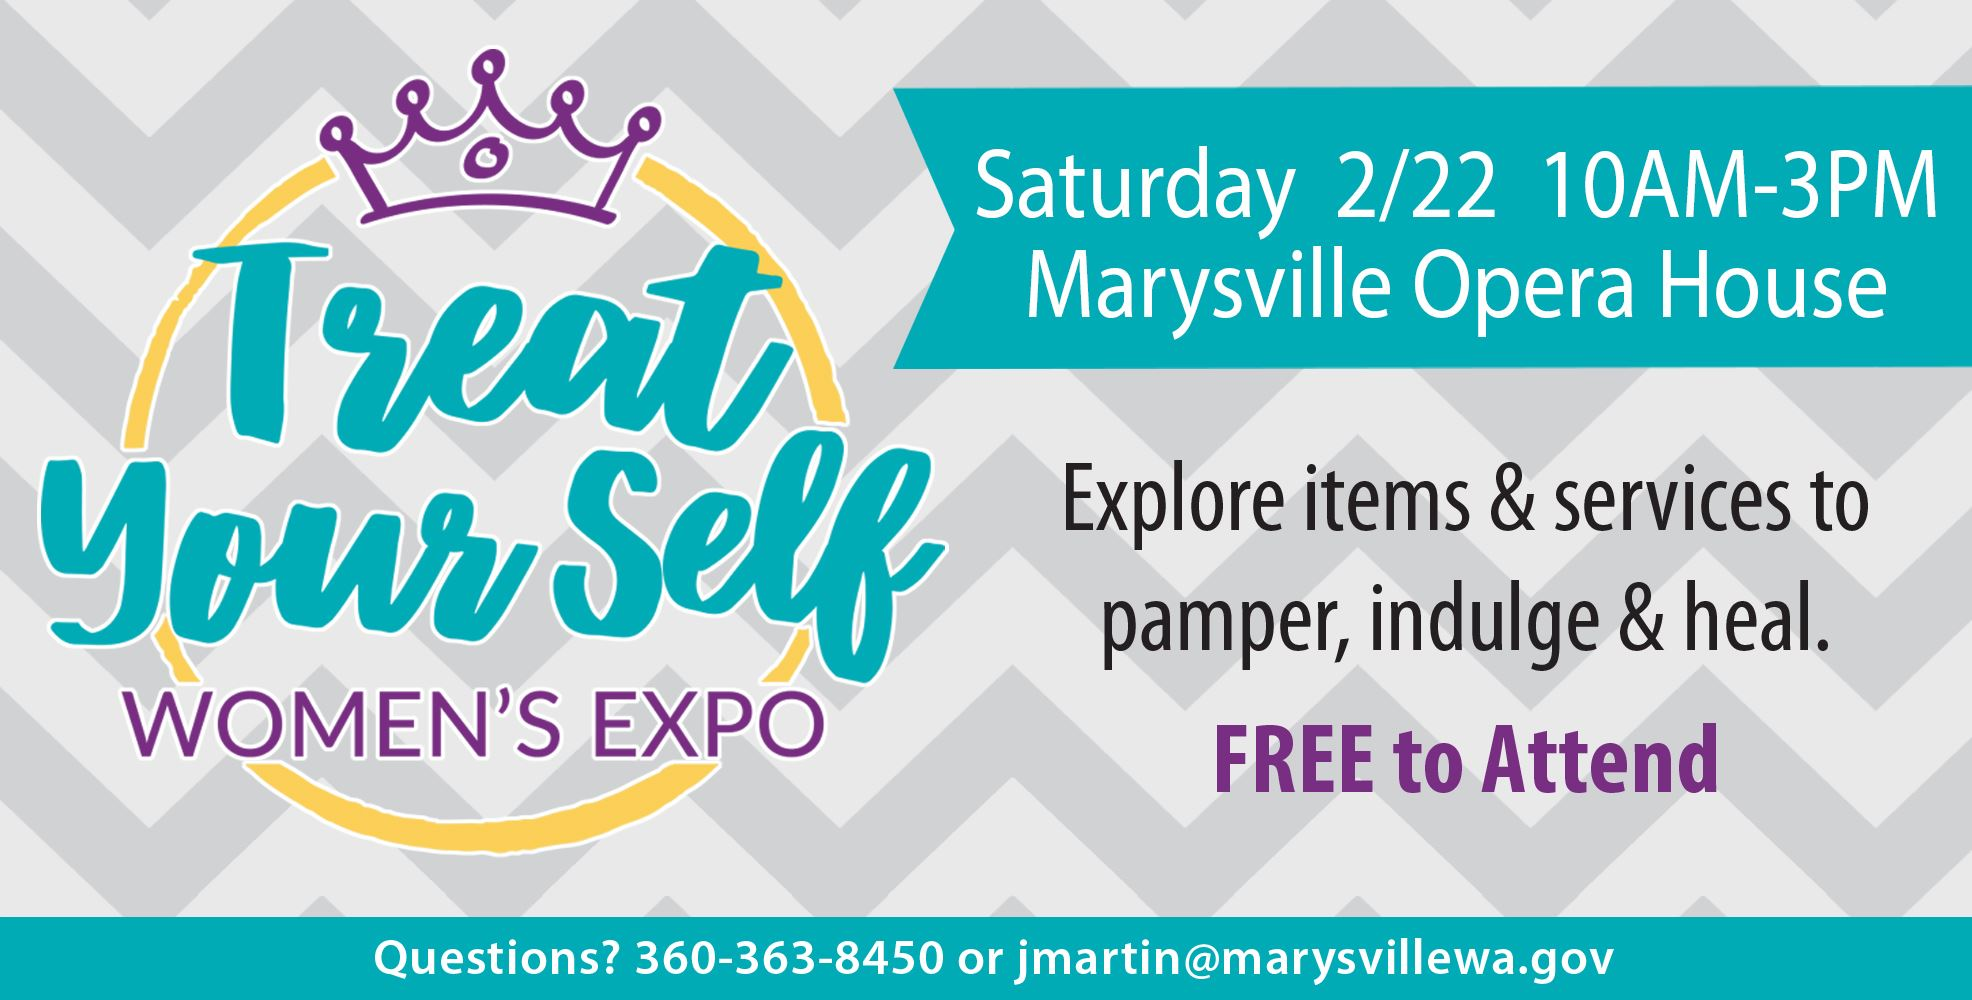 Treat Your Self Women's Expo on Saturday, February 22 from 10 a.m. to 3 p.m. at the Marysville Op